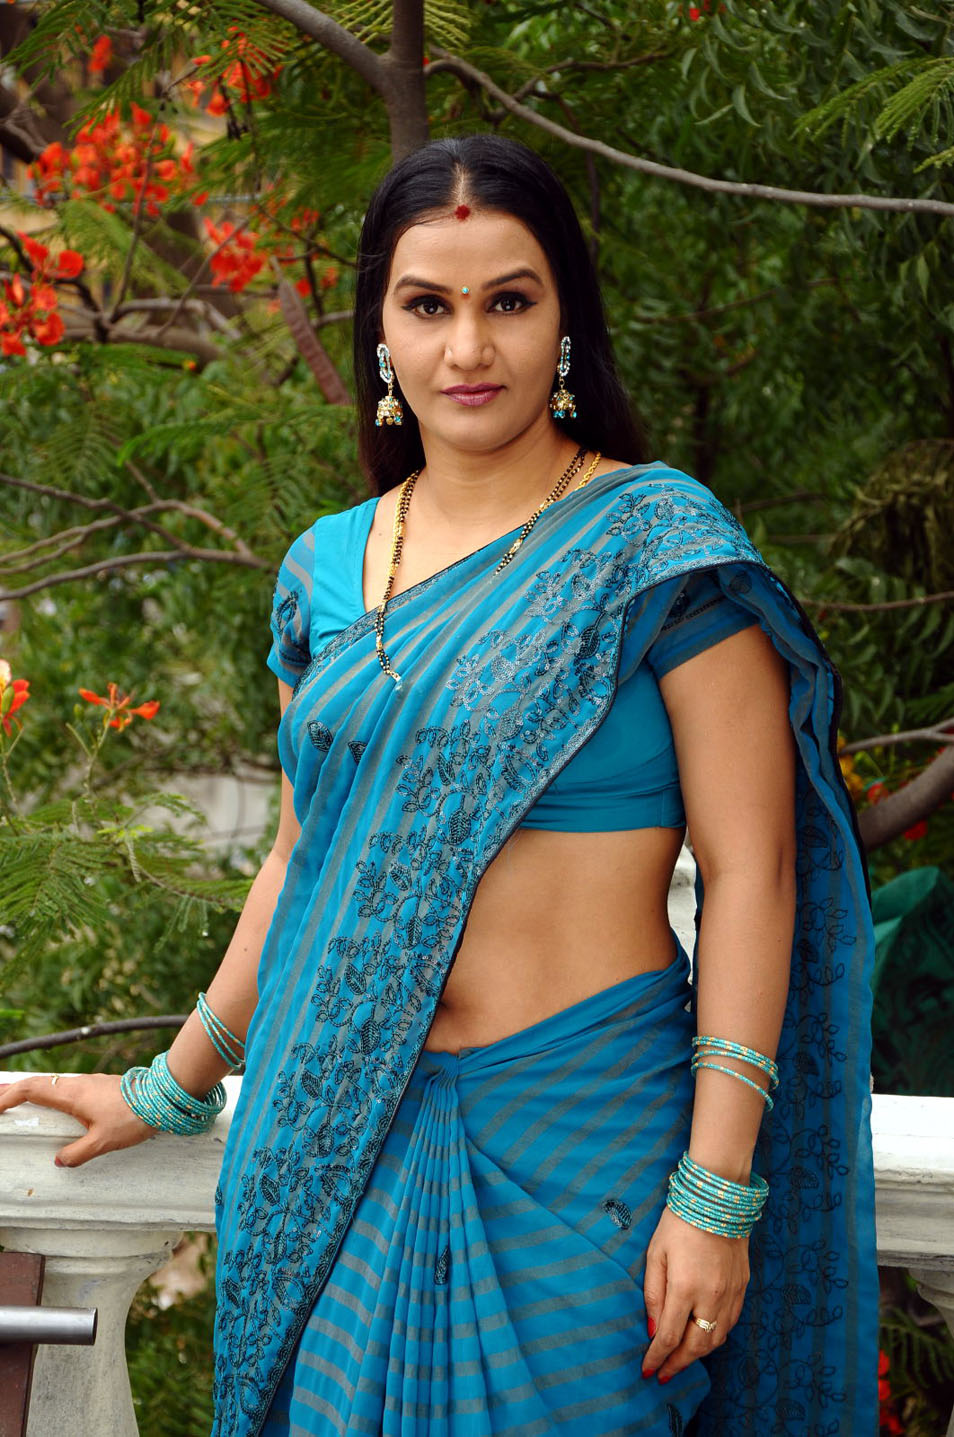 indian aunty actress wear saree below navel photos